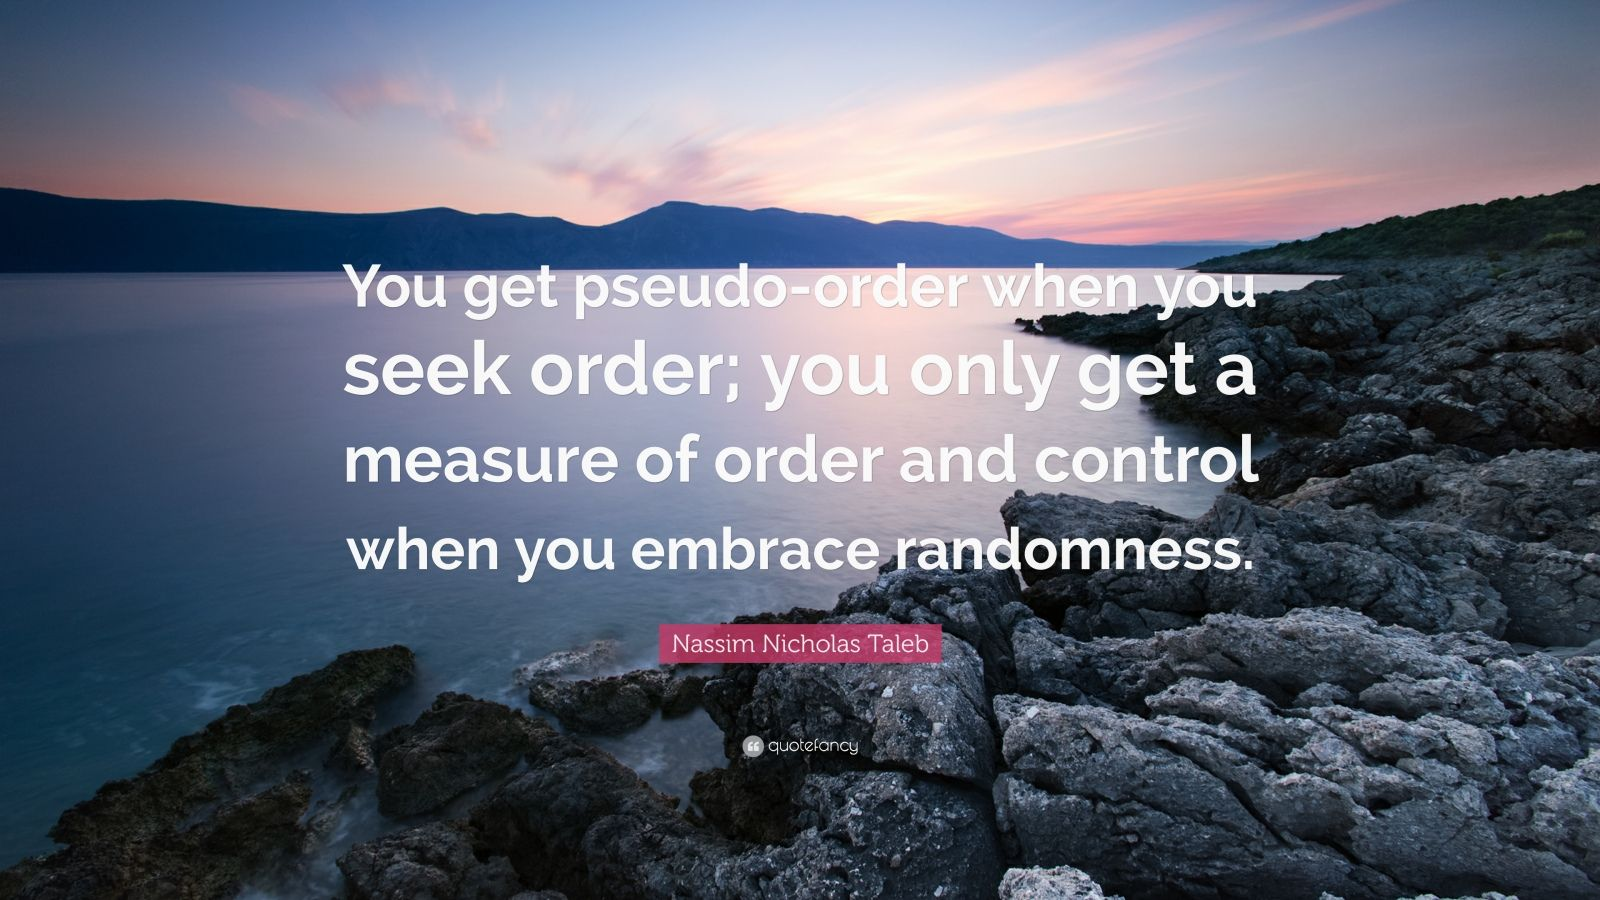 """Nassim Nicholas Taleb Quote: """"You get pseudo-order when you seek order; you only get a measure of order and control when you embrace randomness."""""""